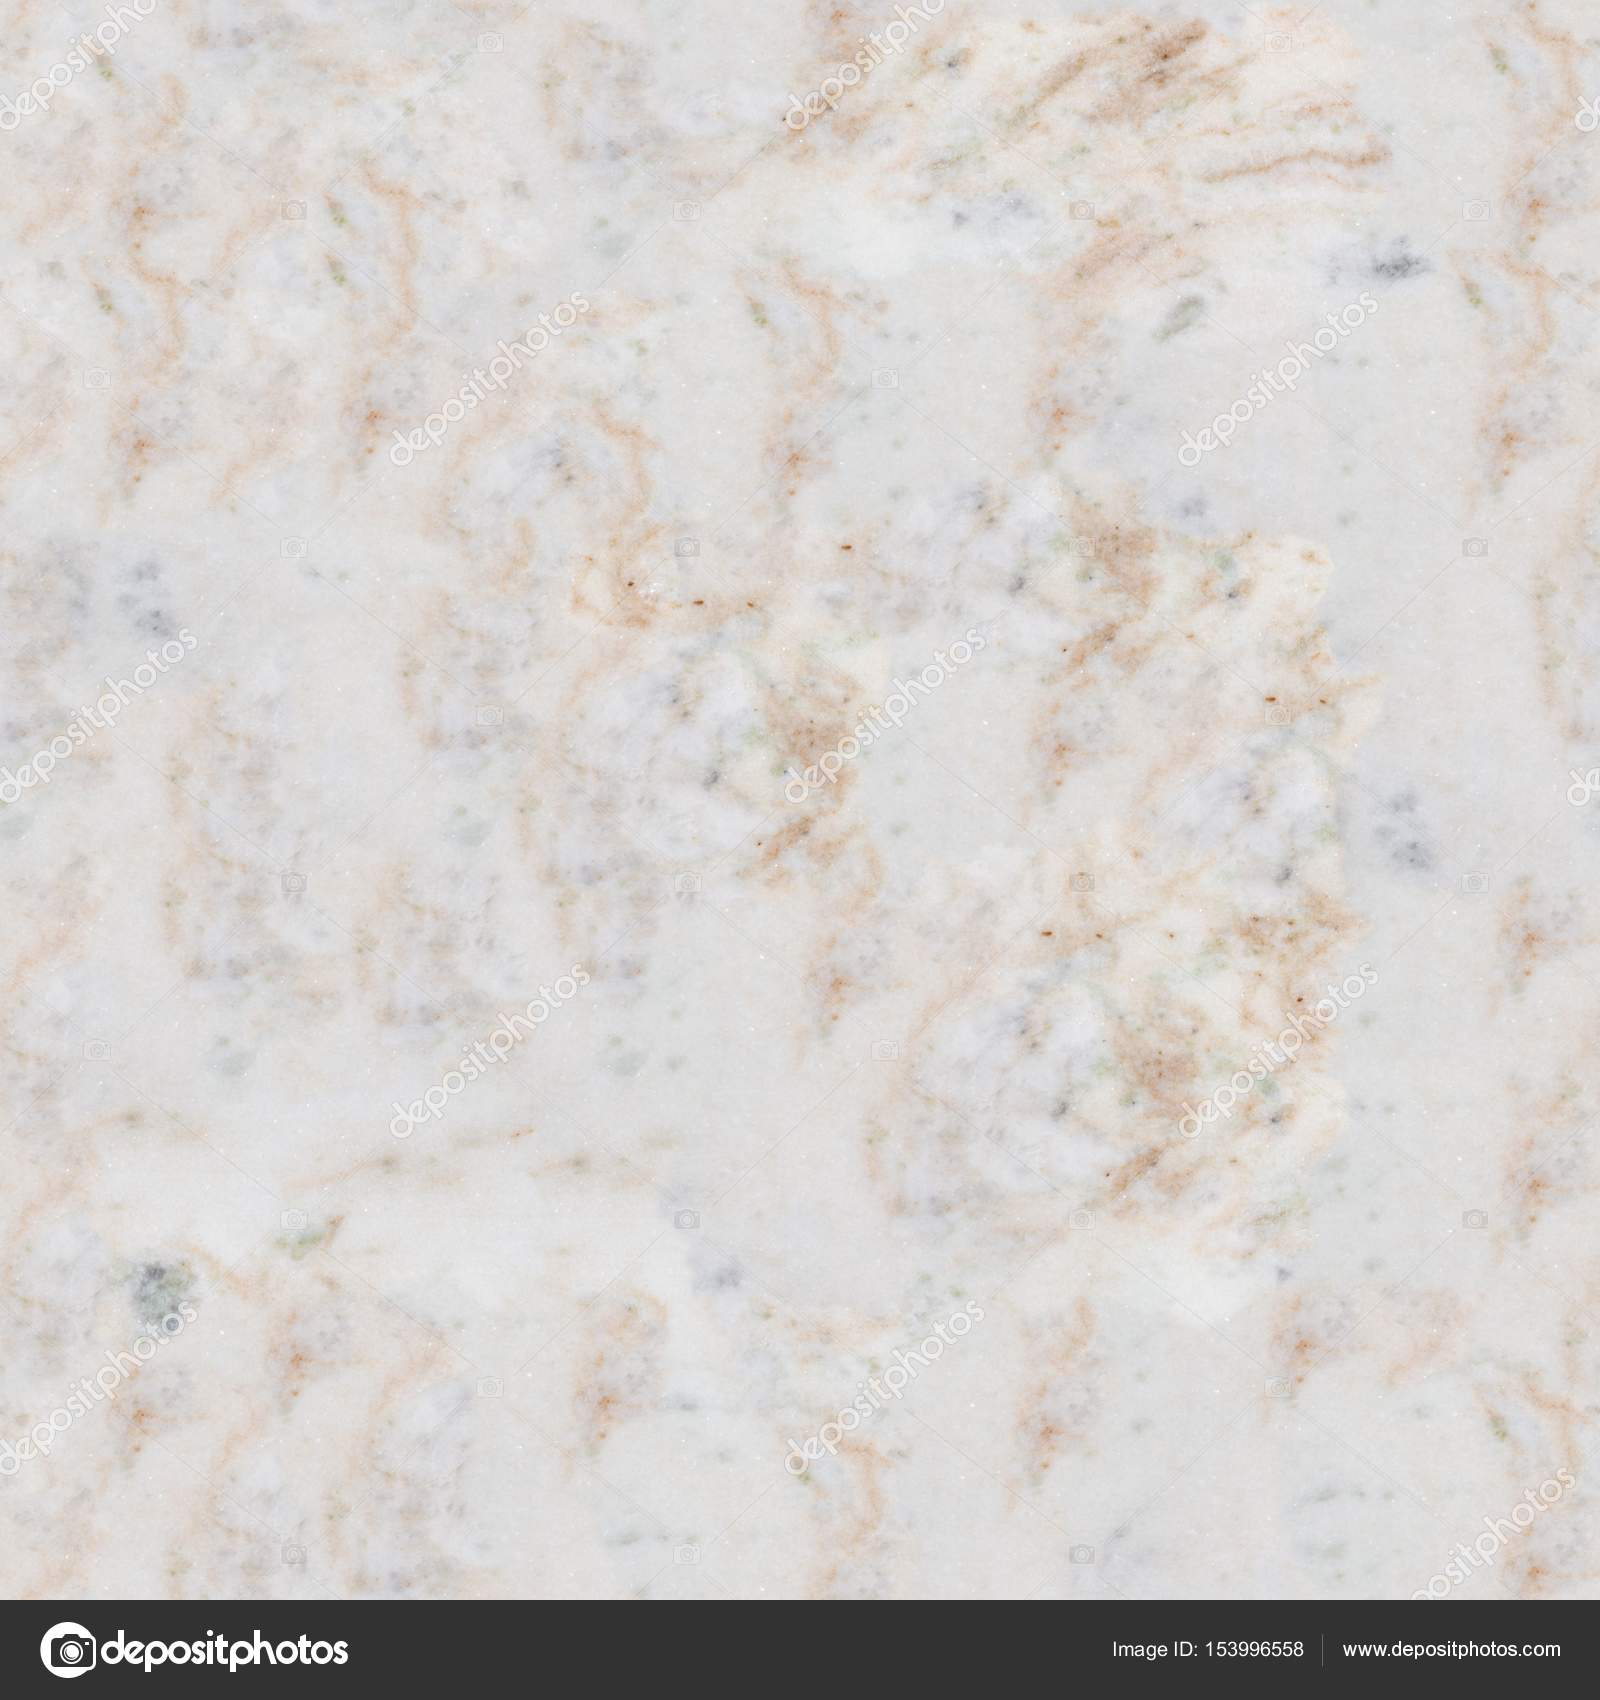 Close Up Of Grey Flat Marble Texture Seamless Square Background Stock Photo